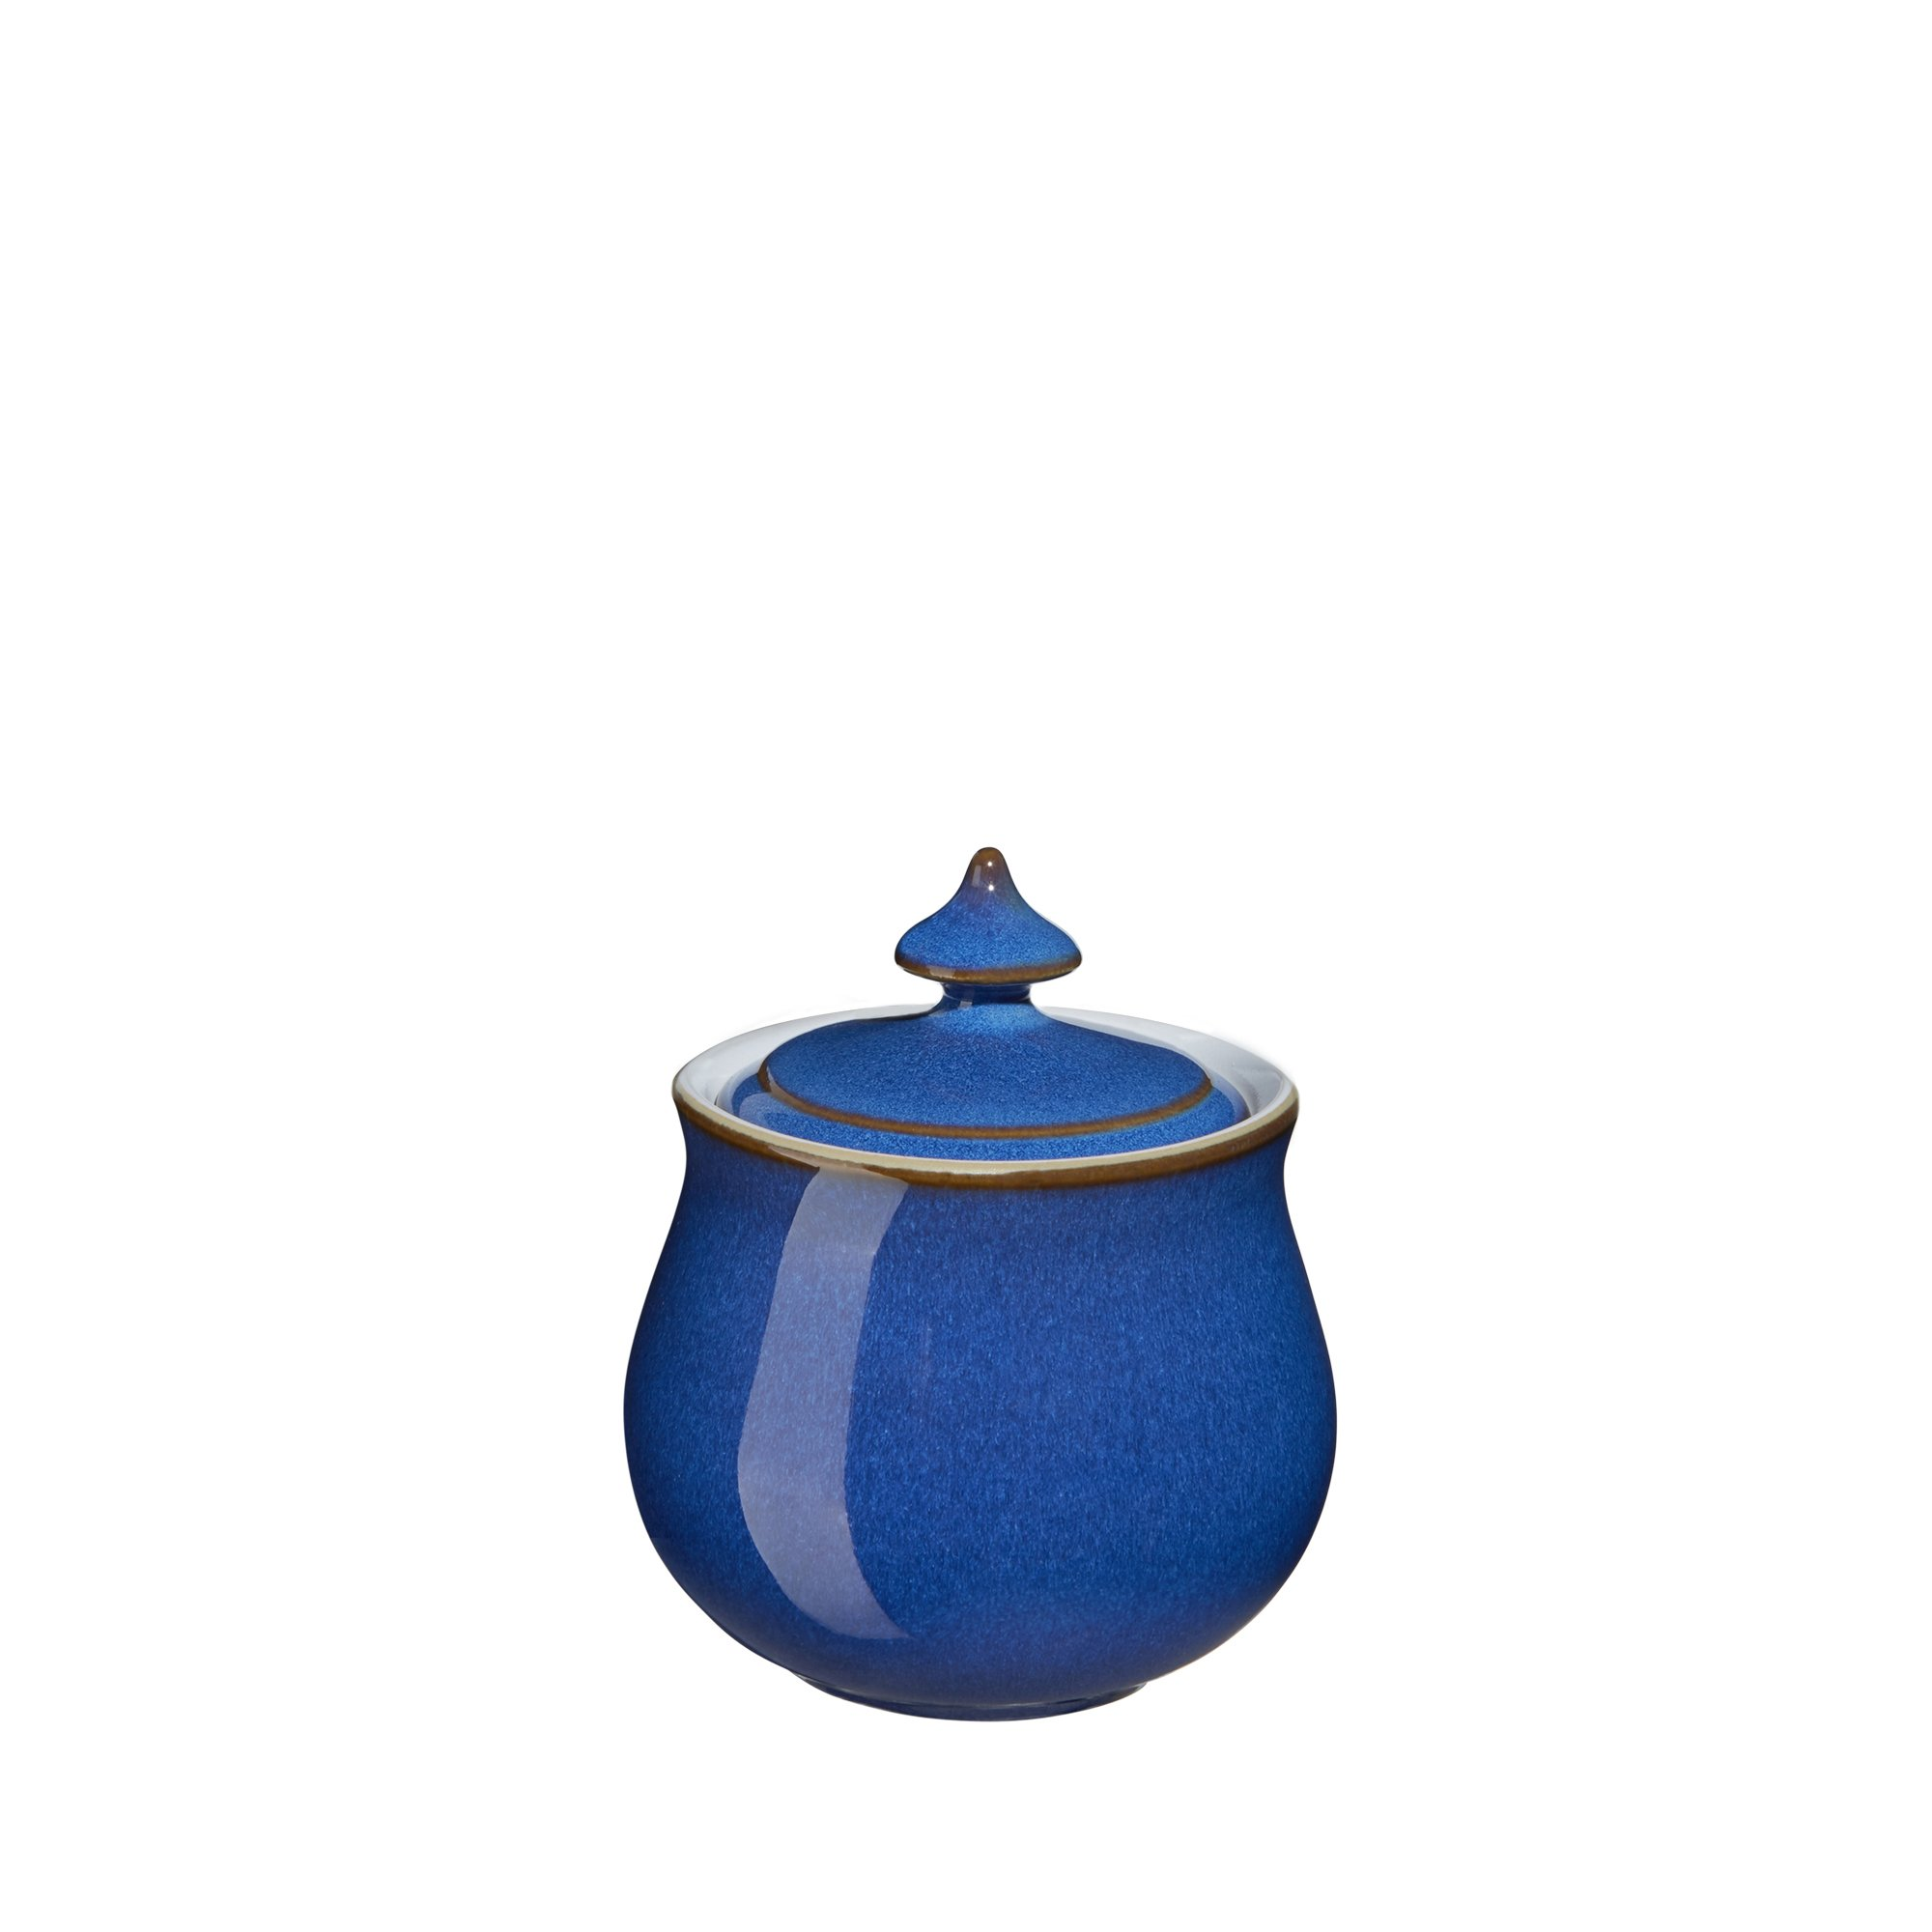 Denby Imperial Blue Covered Sugar